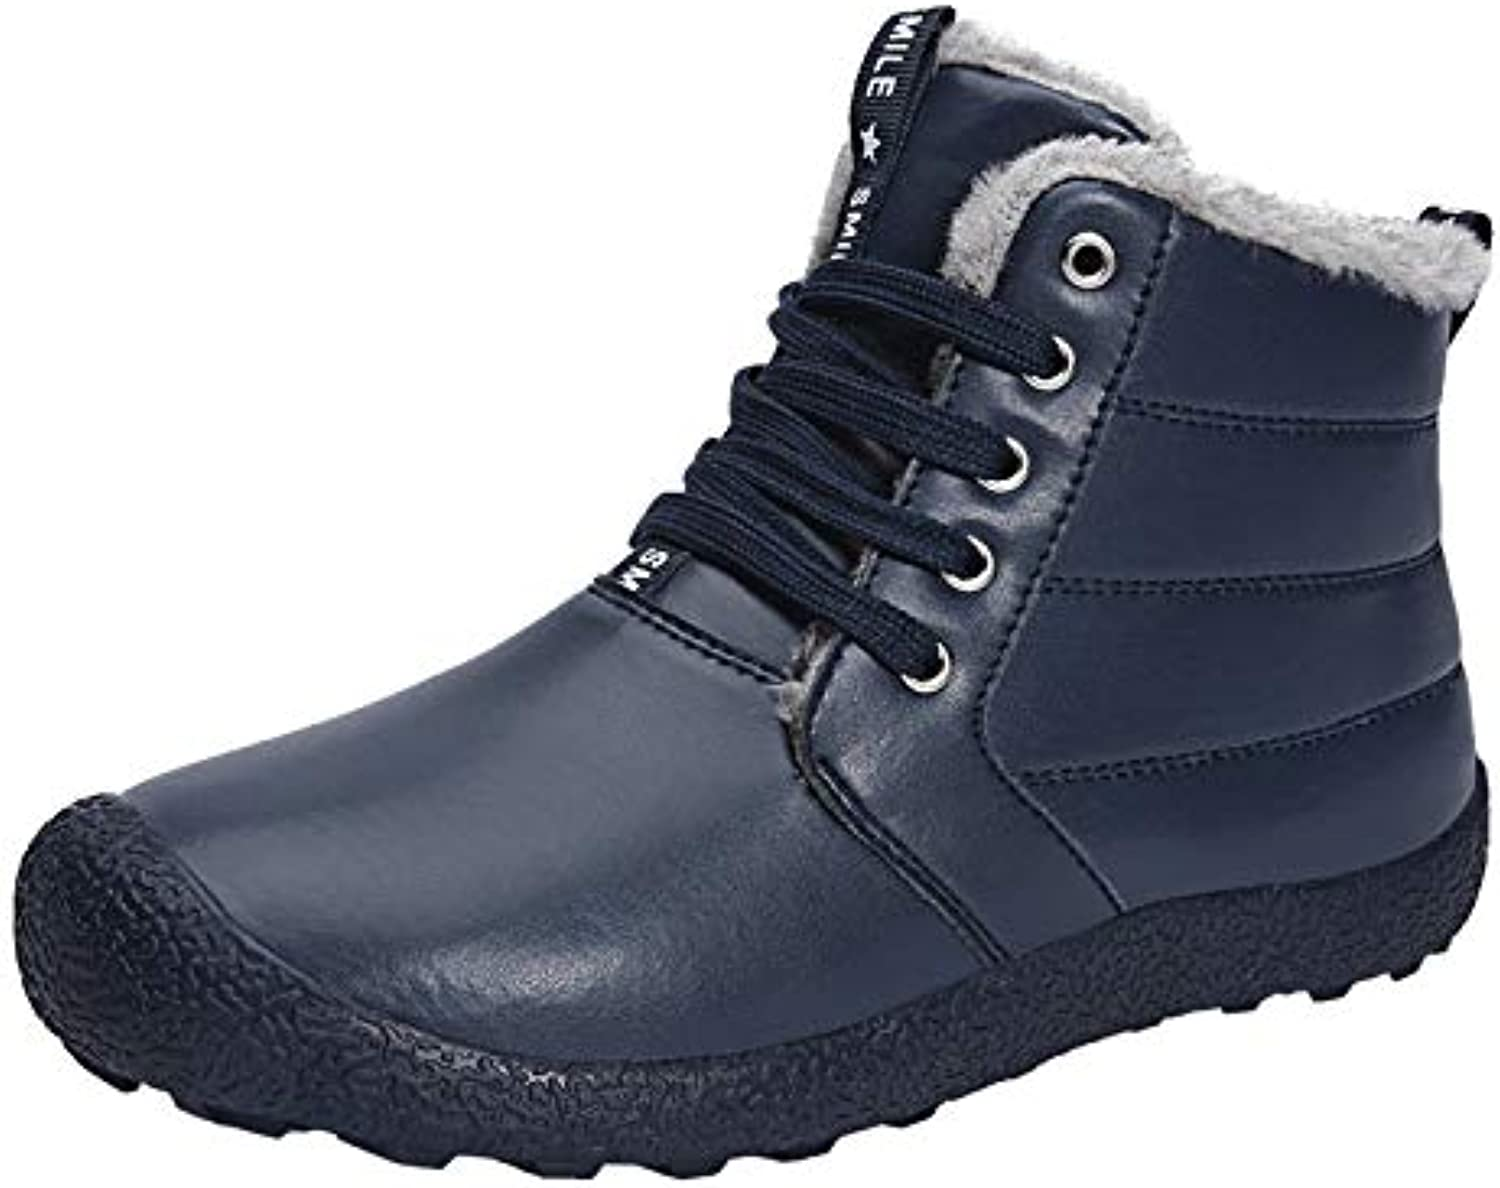 79c588c98650a LOVDRAM Boots Men's Autumn And Winter New Martin Boots High To Help ...